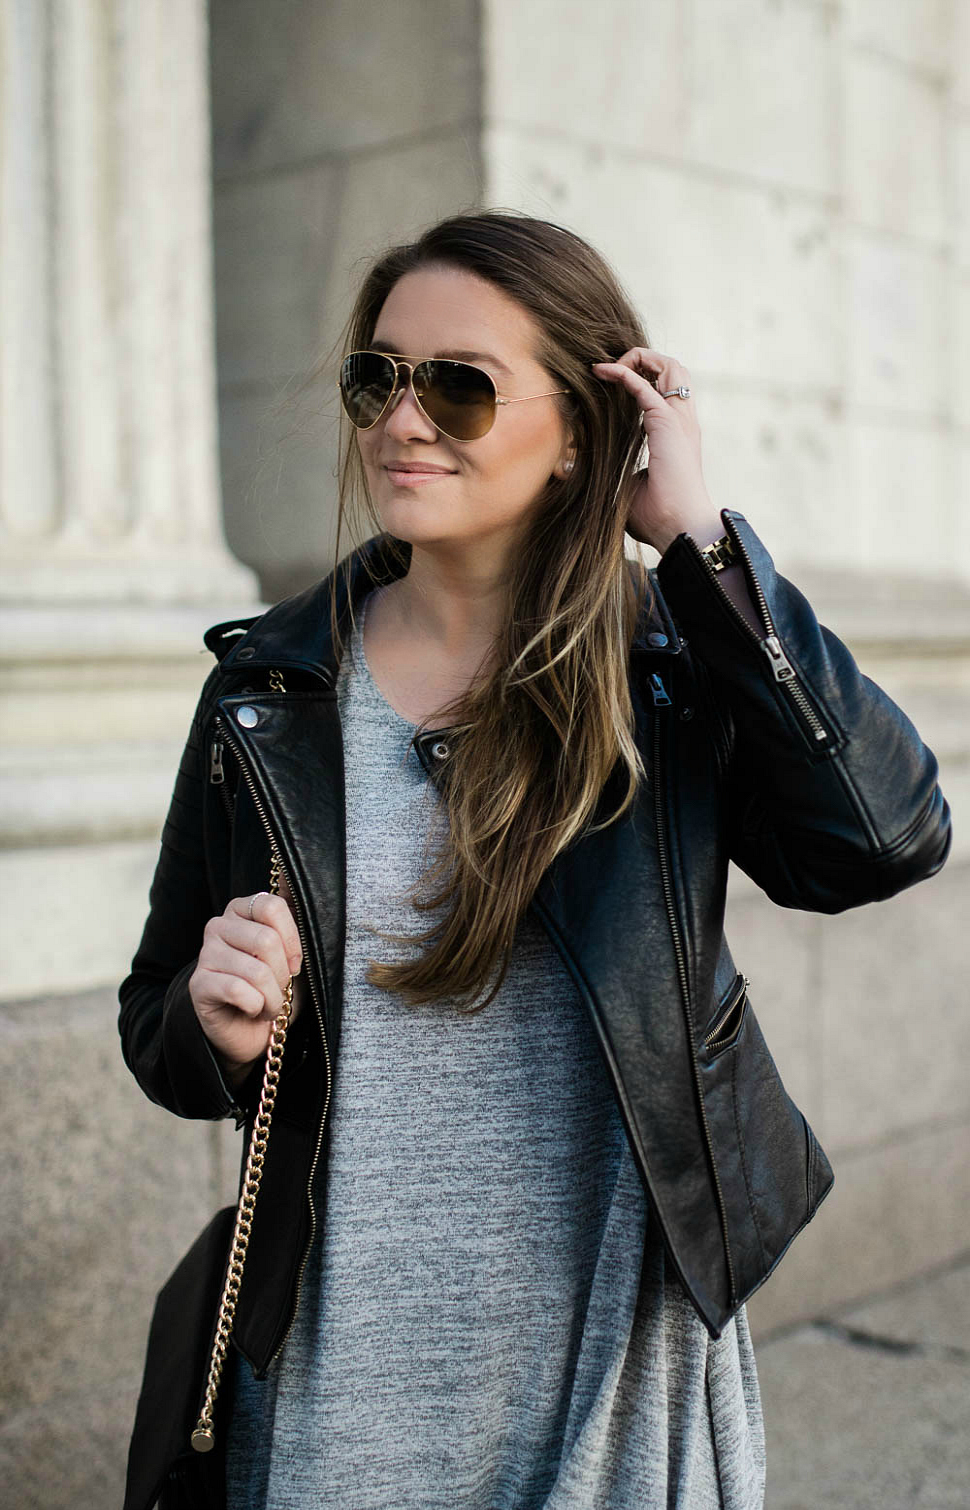 leather-jacket-over-the-knee-boots-ray-ban-canadian-blogger-style-fashion-outfit-rosecitystyleguide-4